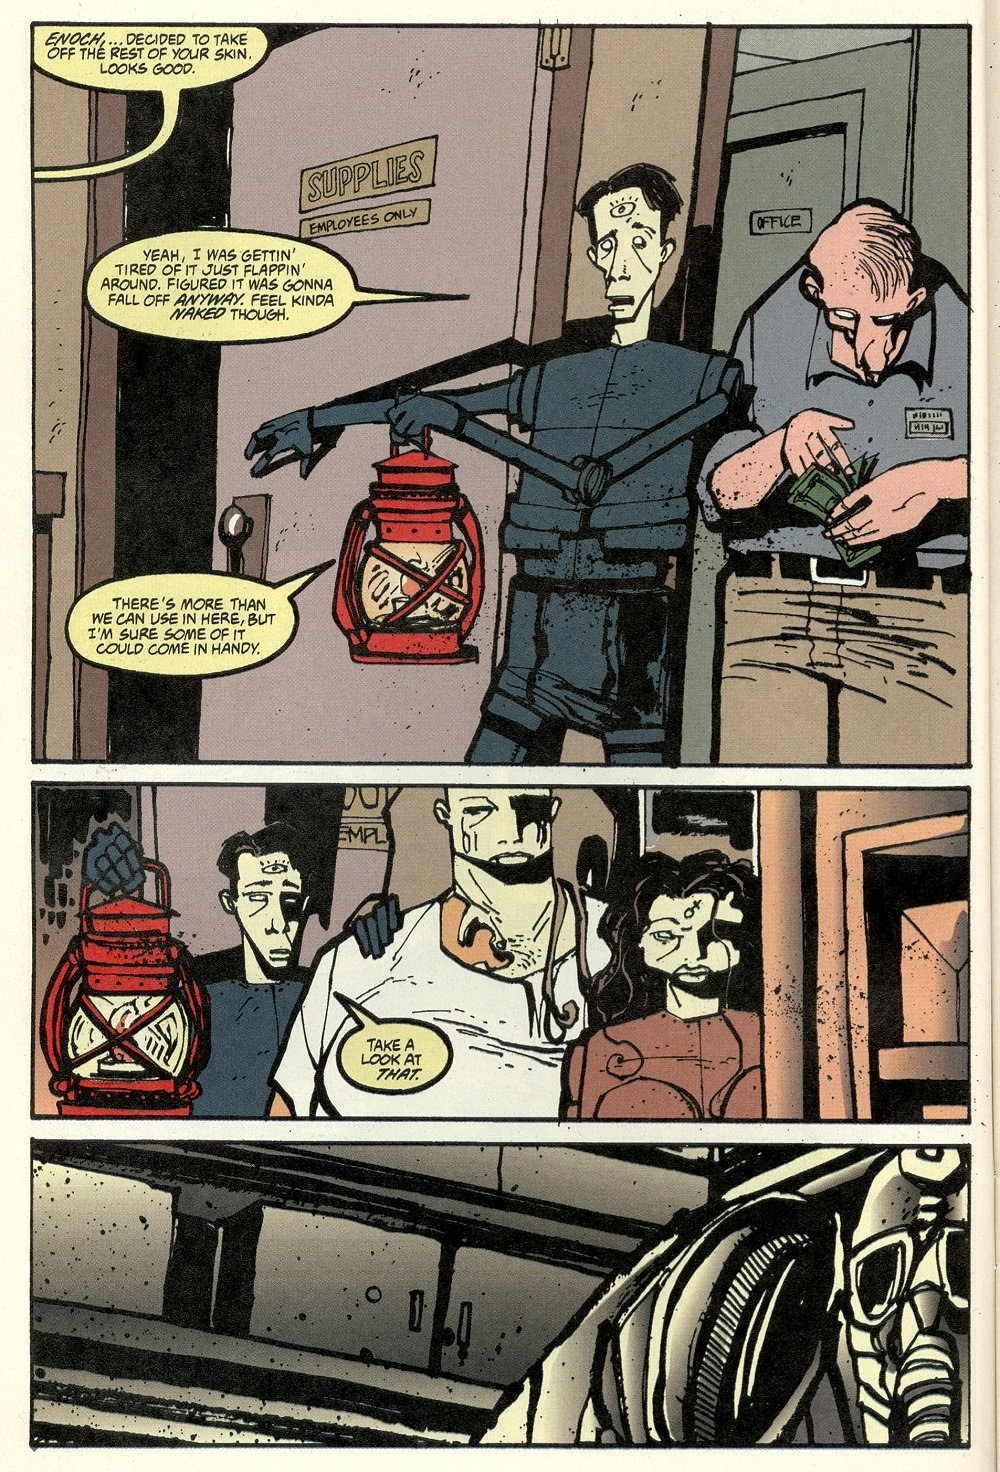 Read online Ted McKeever's Metropol comic -  Issue #11 - 10